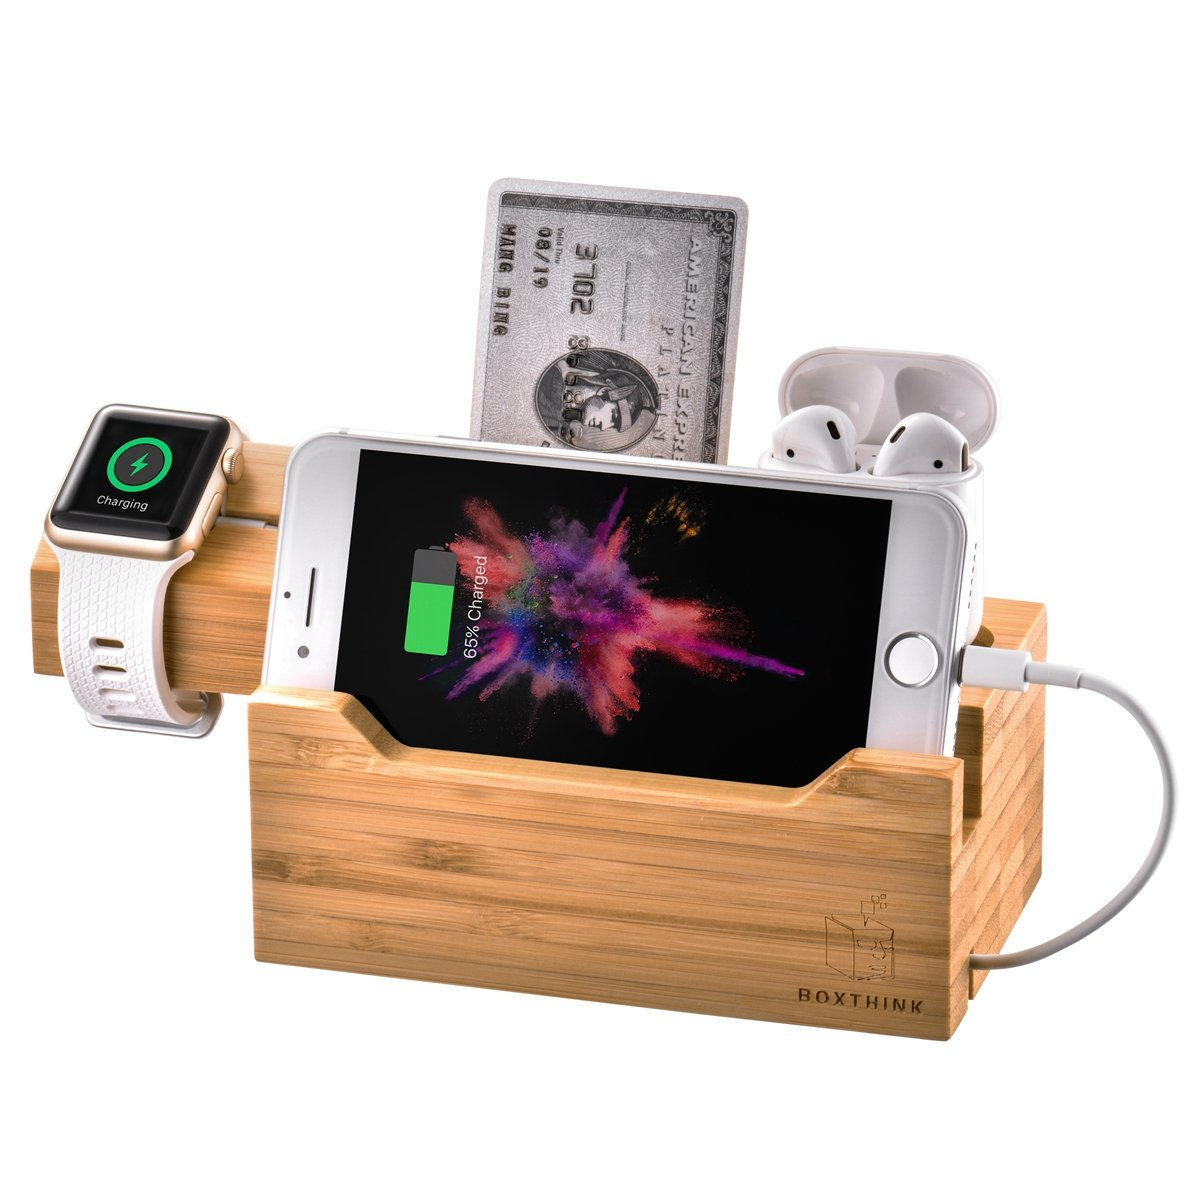 Charging Station for Apple Watches, iPhones, AirPod Apple Watch Charger Stand AirPods Charging Dock Bamboo Wood Charging Station with 3 USB Power Ports